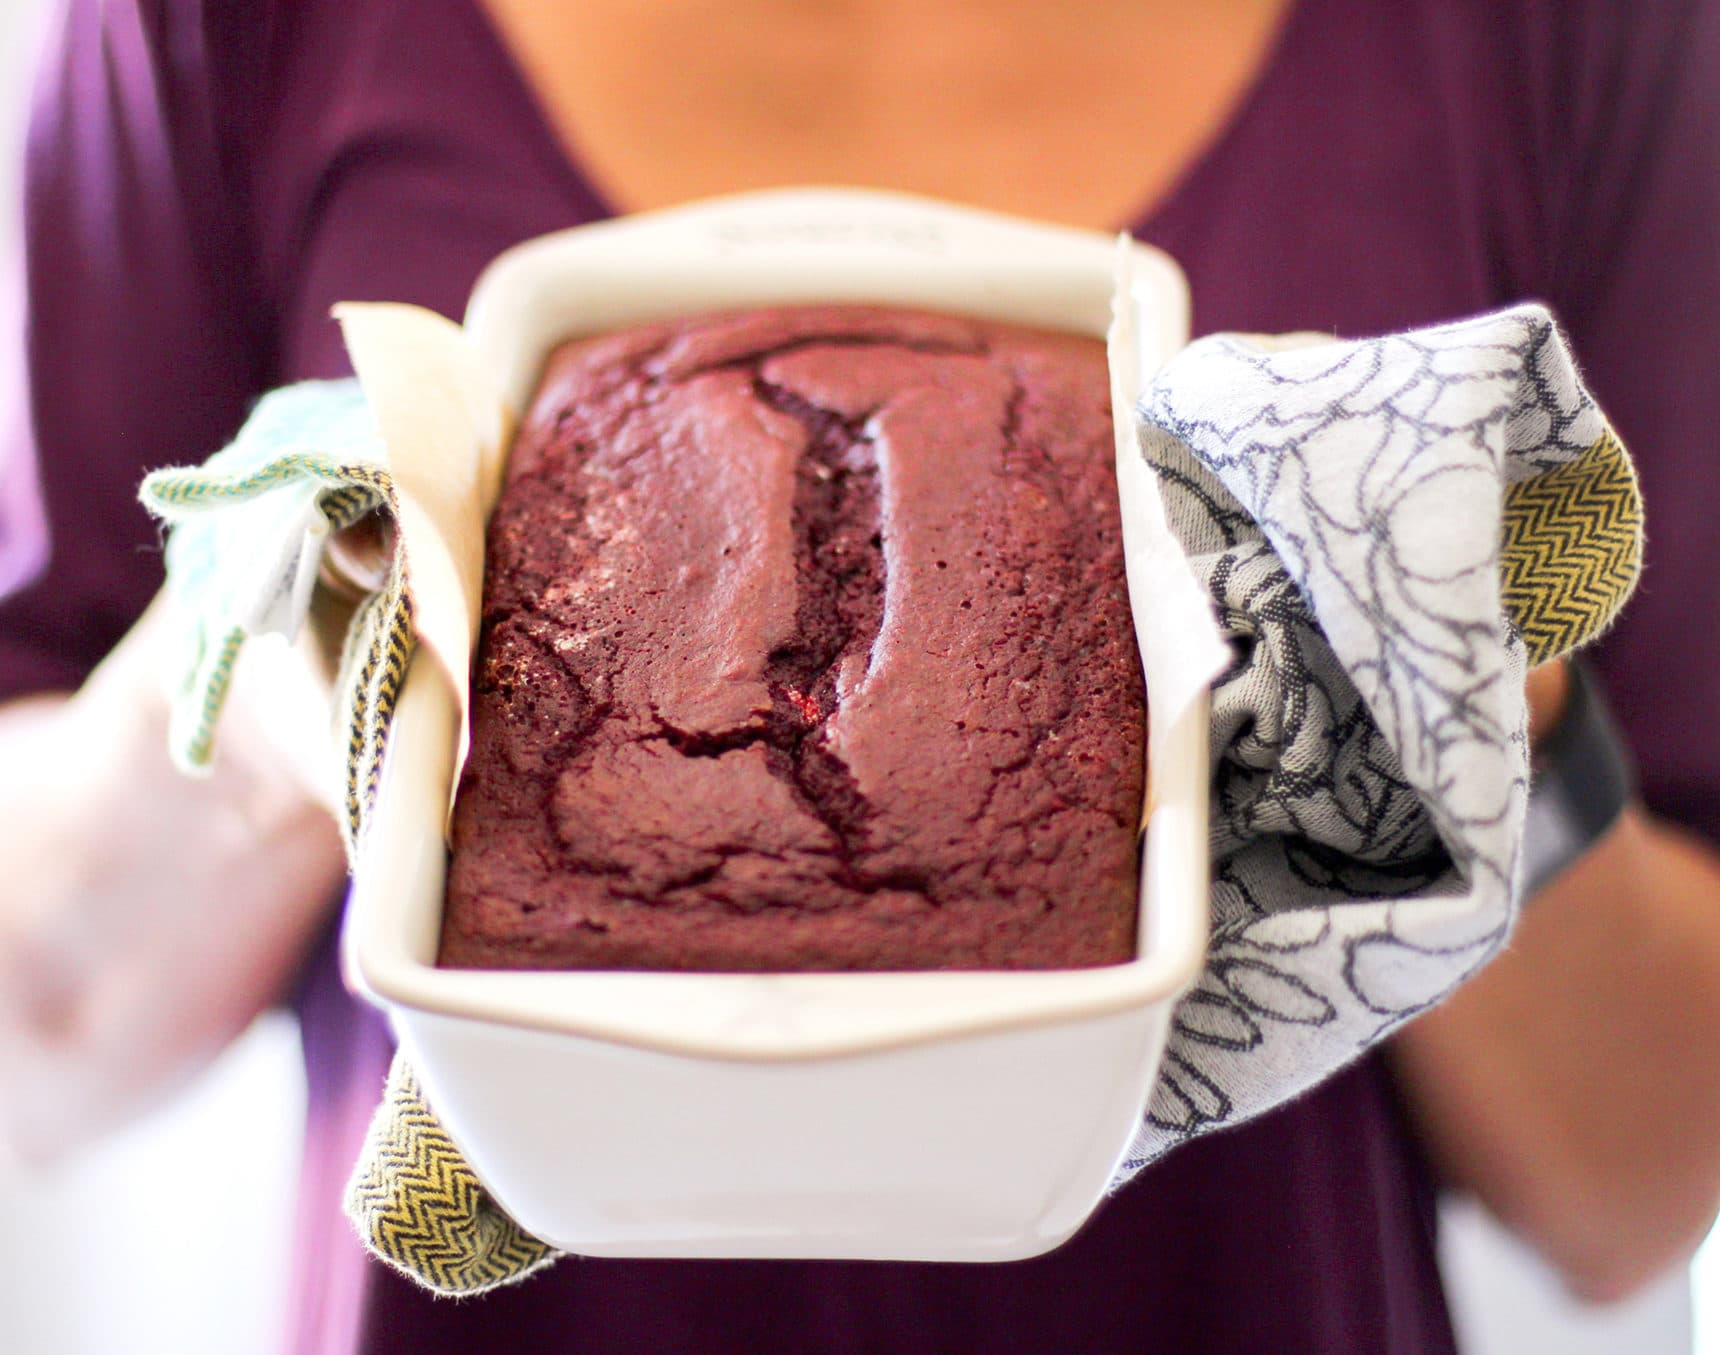 Low Fat High Fibre Cake Recipes: Healthy Red Velvet Loaf (sugar Free, Low Fat, High Protein